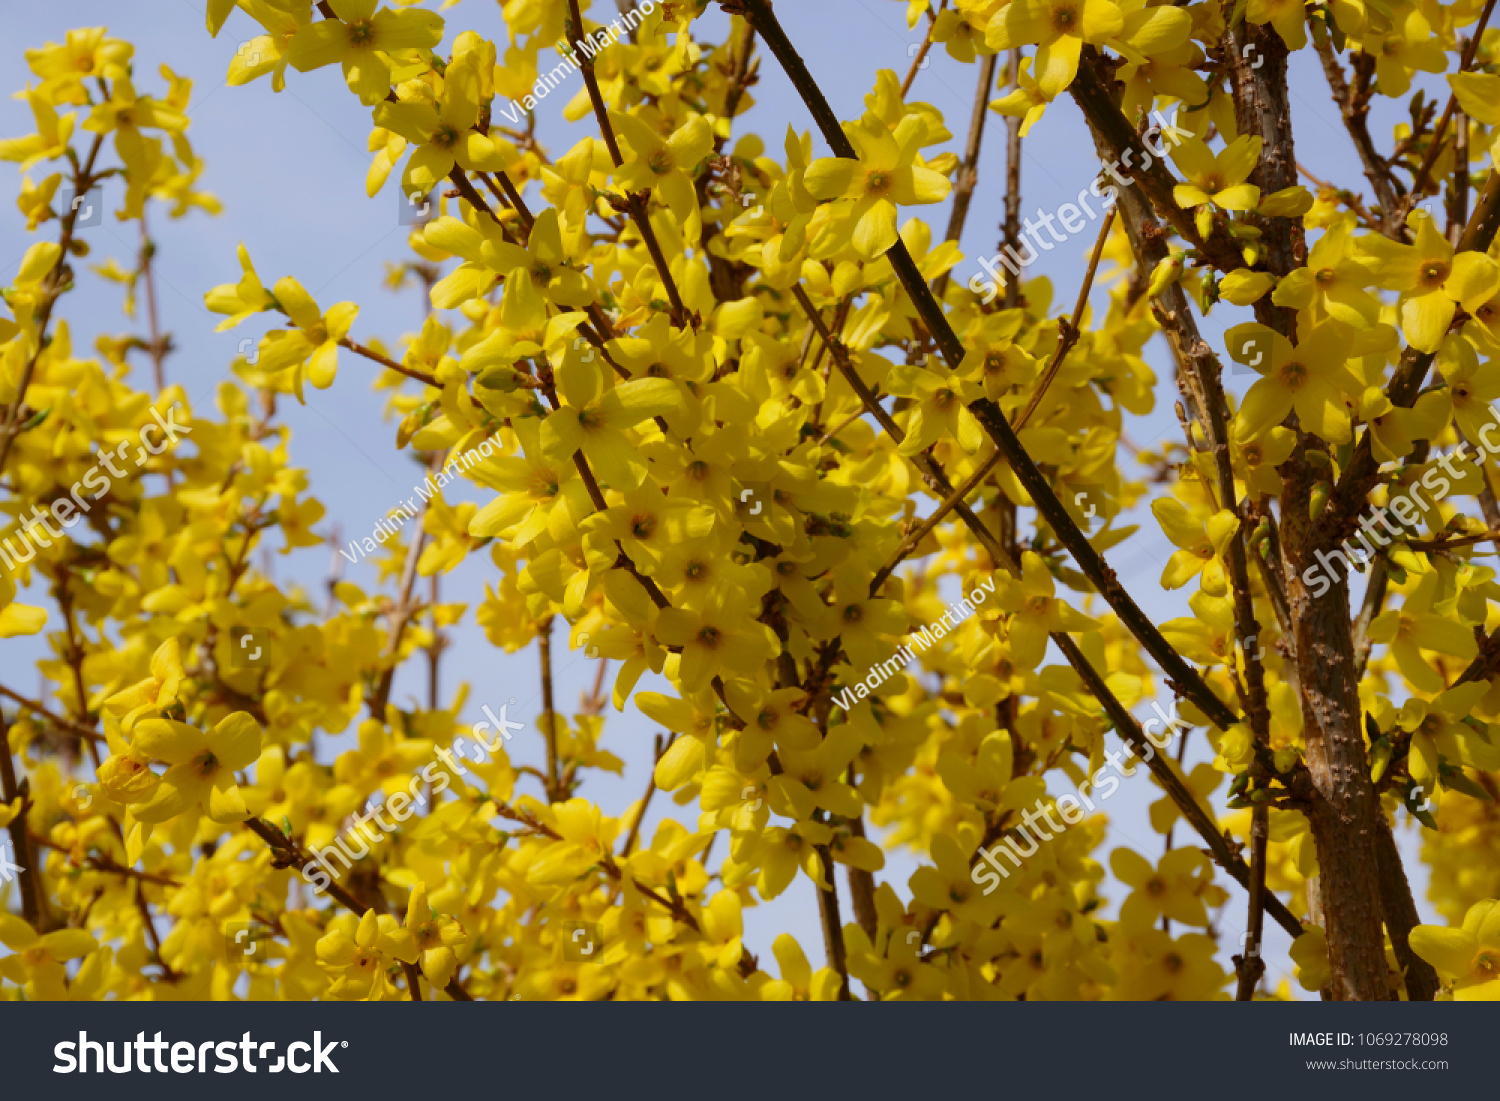 Yellow Flowers Backgroundearly Spring Blooming Bush Stock Photo